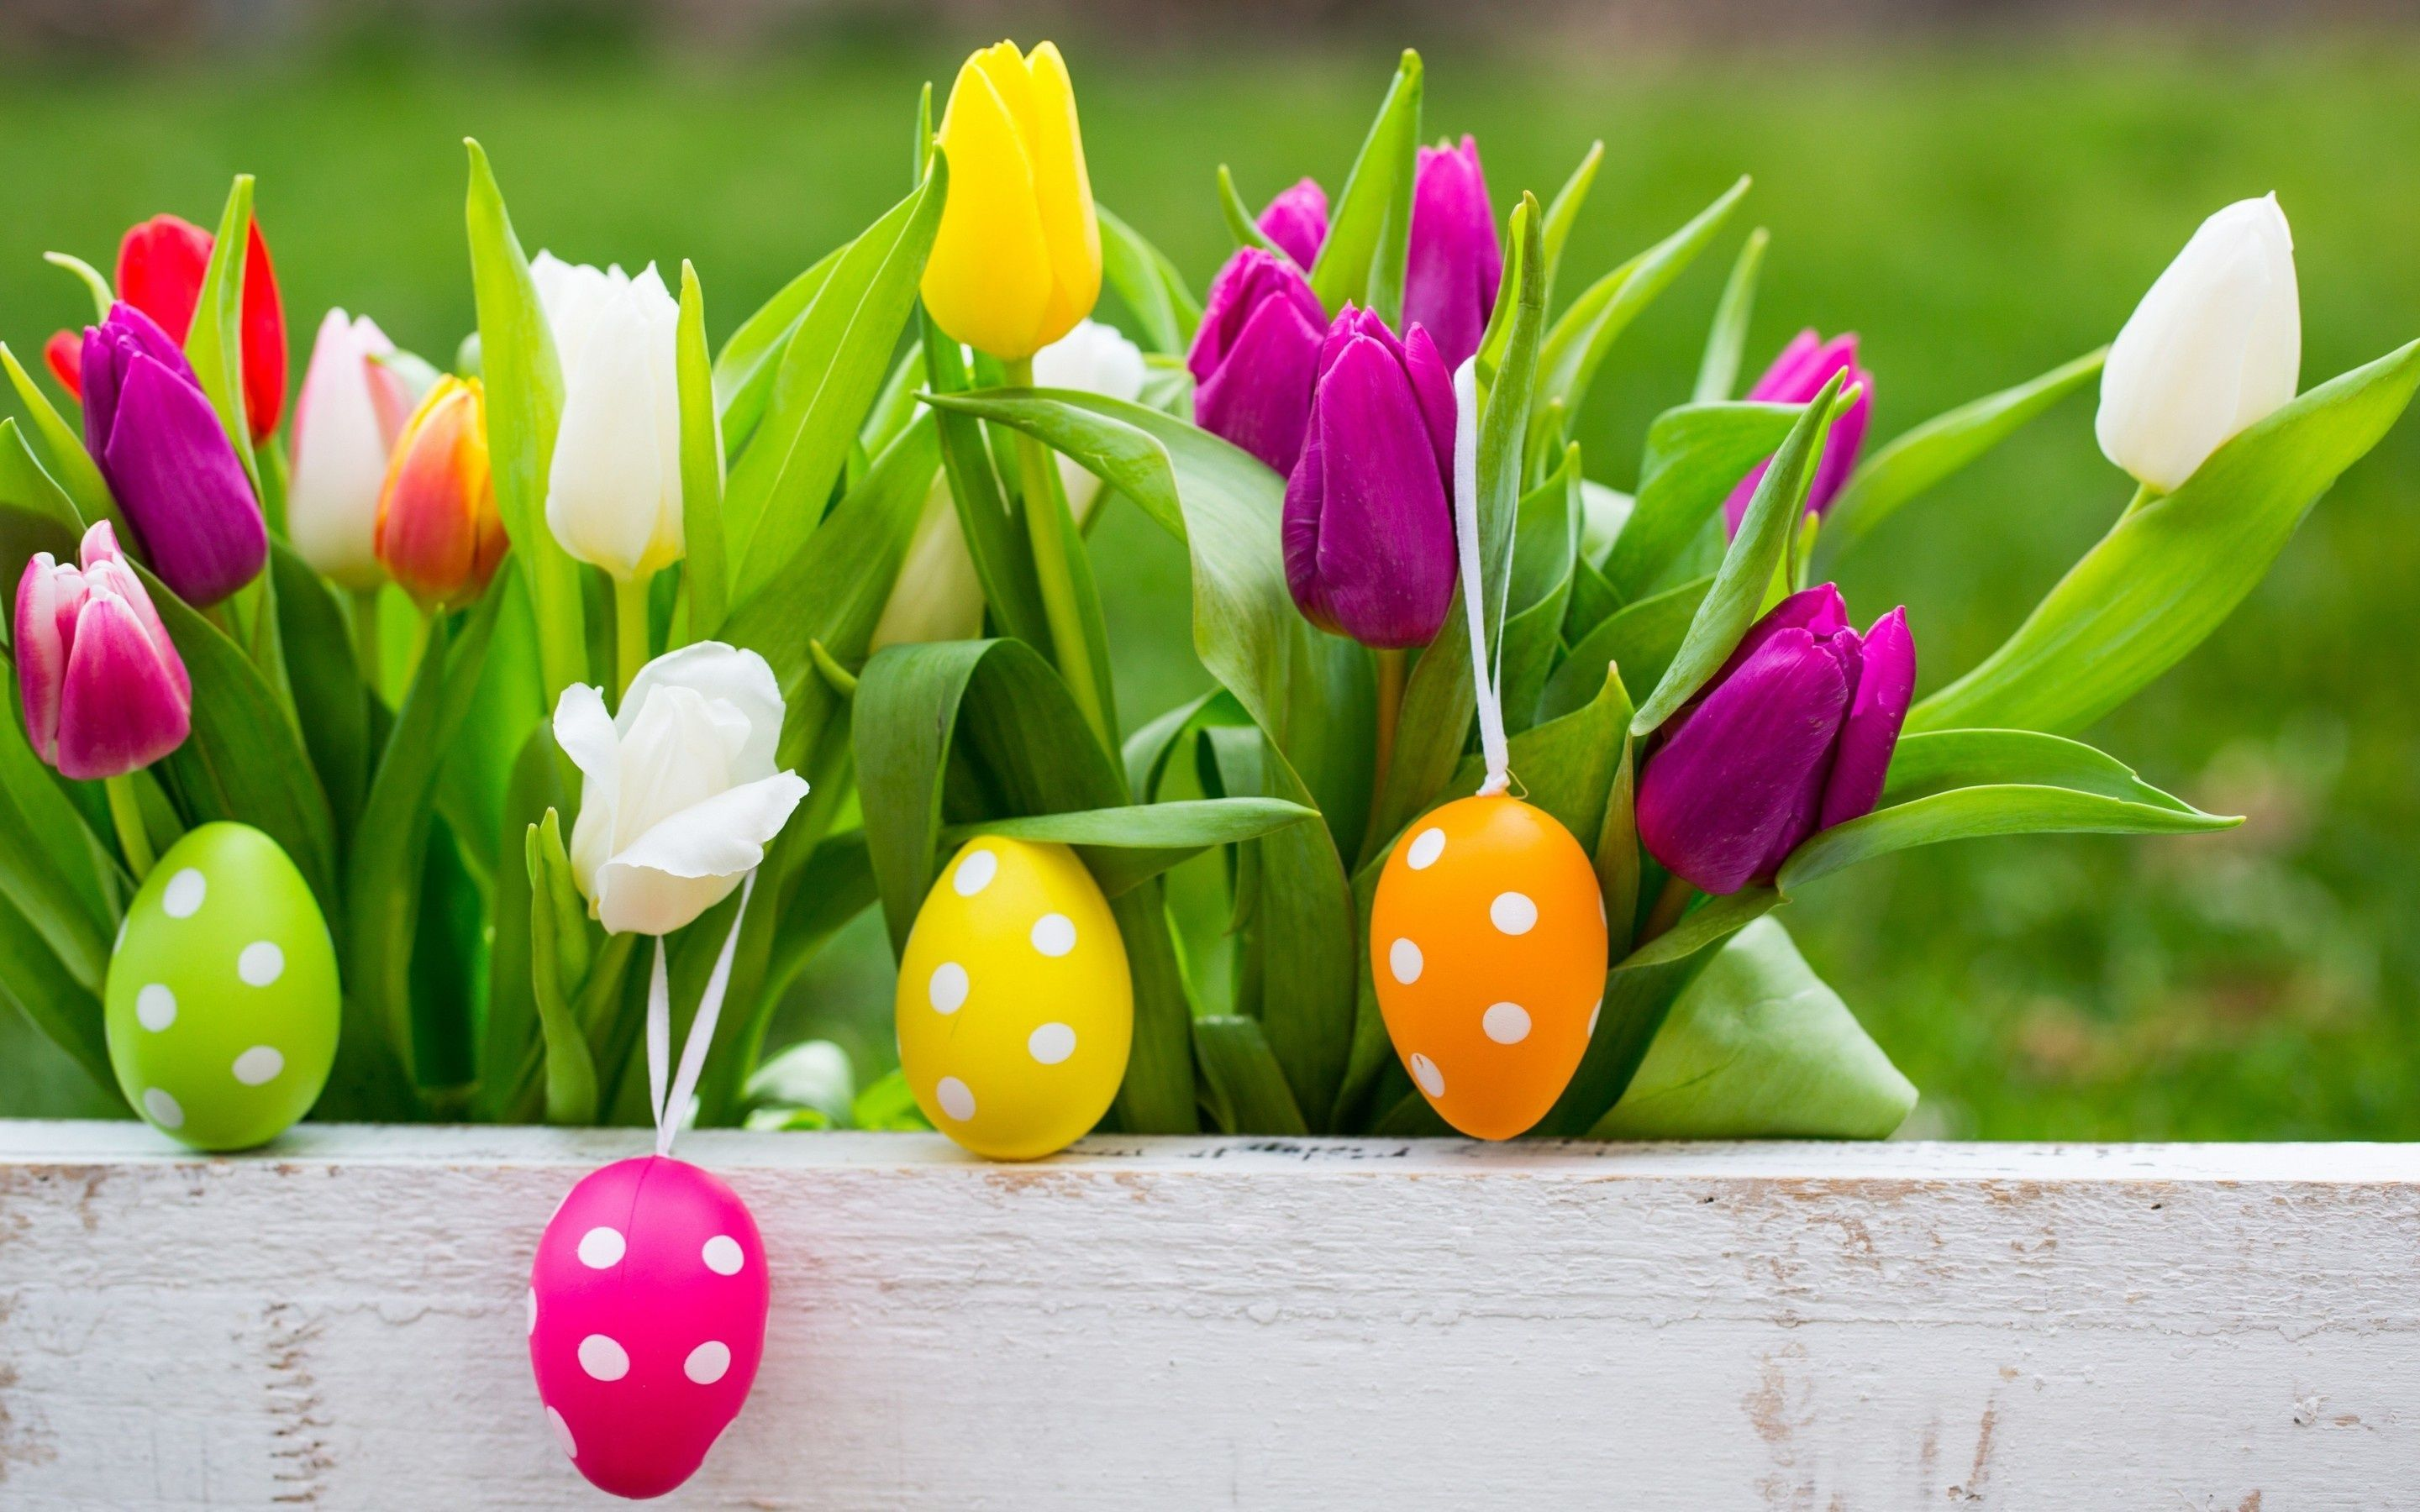 2880x1800 Easter Eggs On Flowers Background Wallpapers - 2880x1800 ...